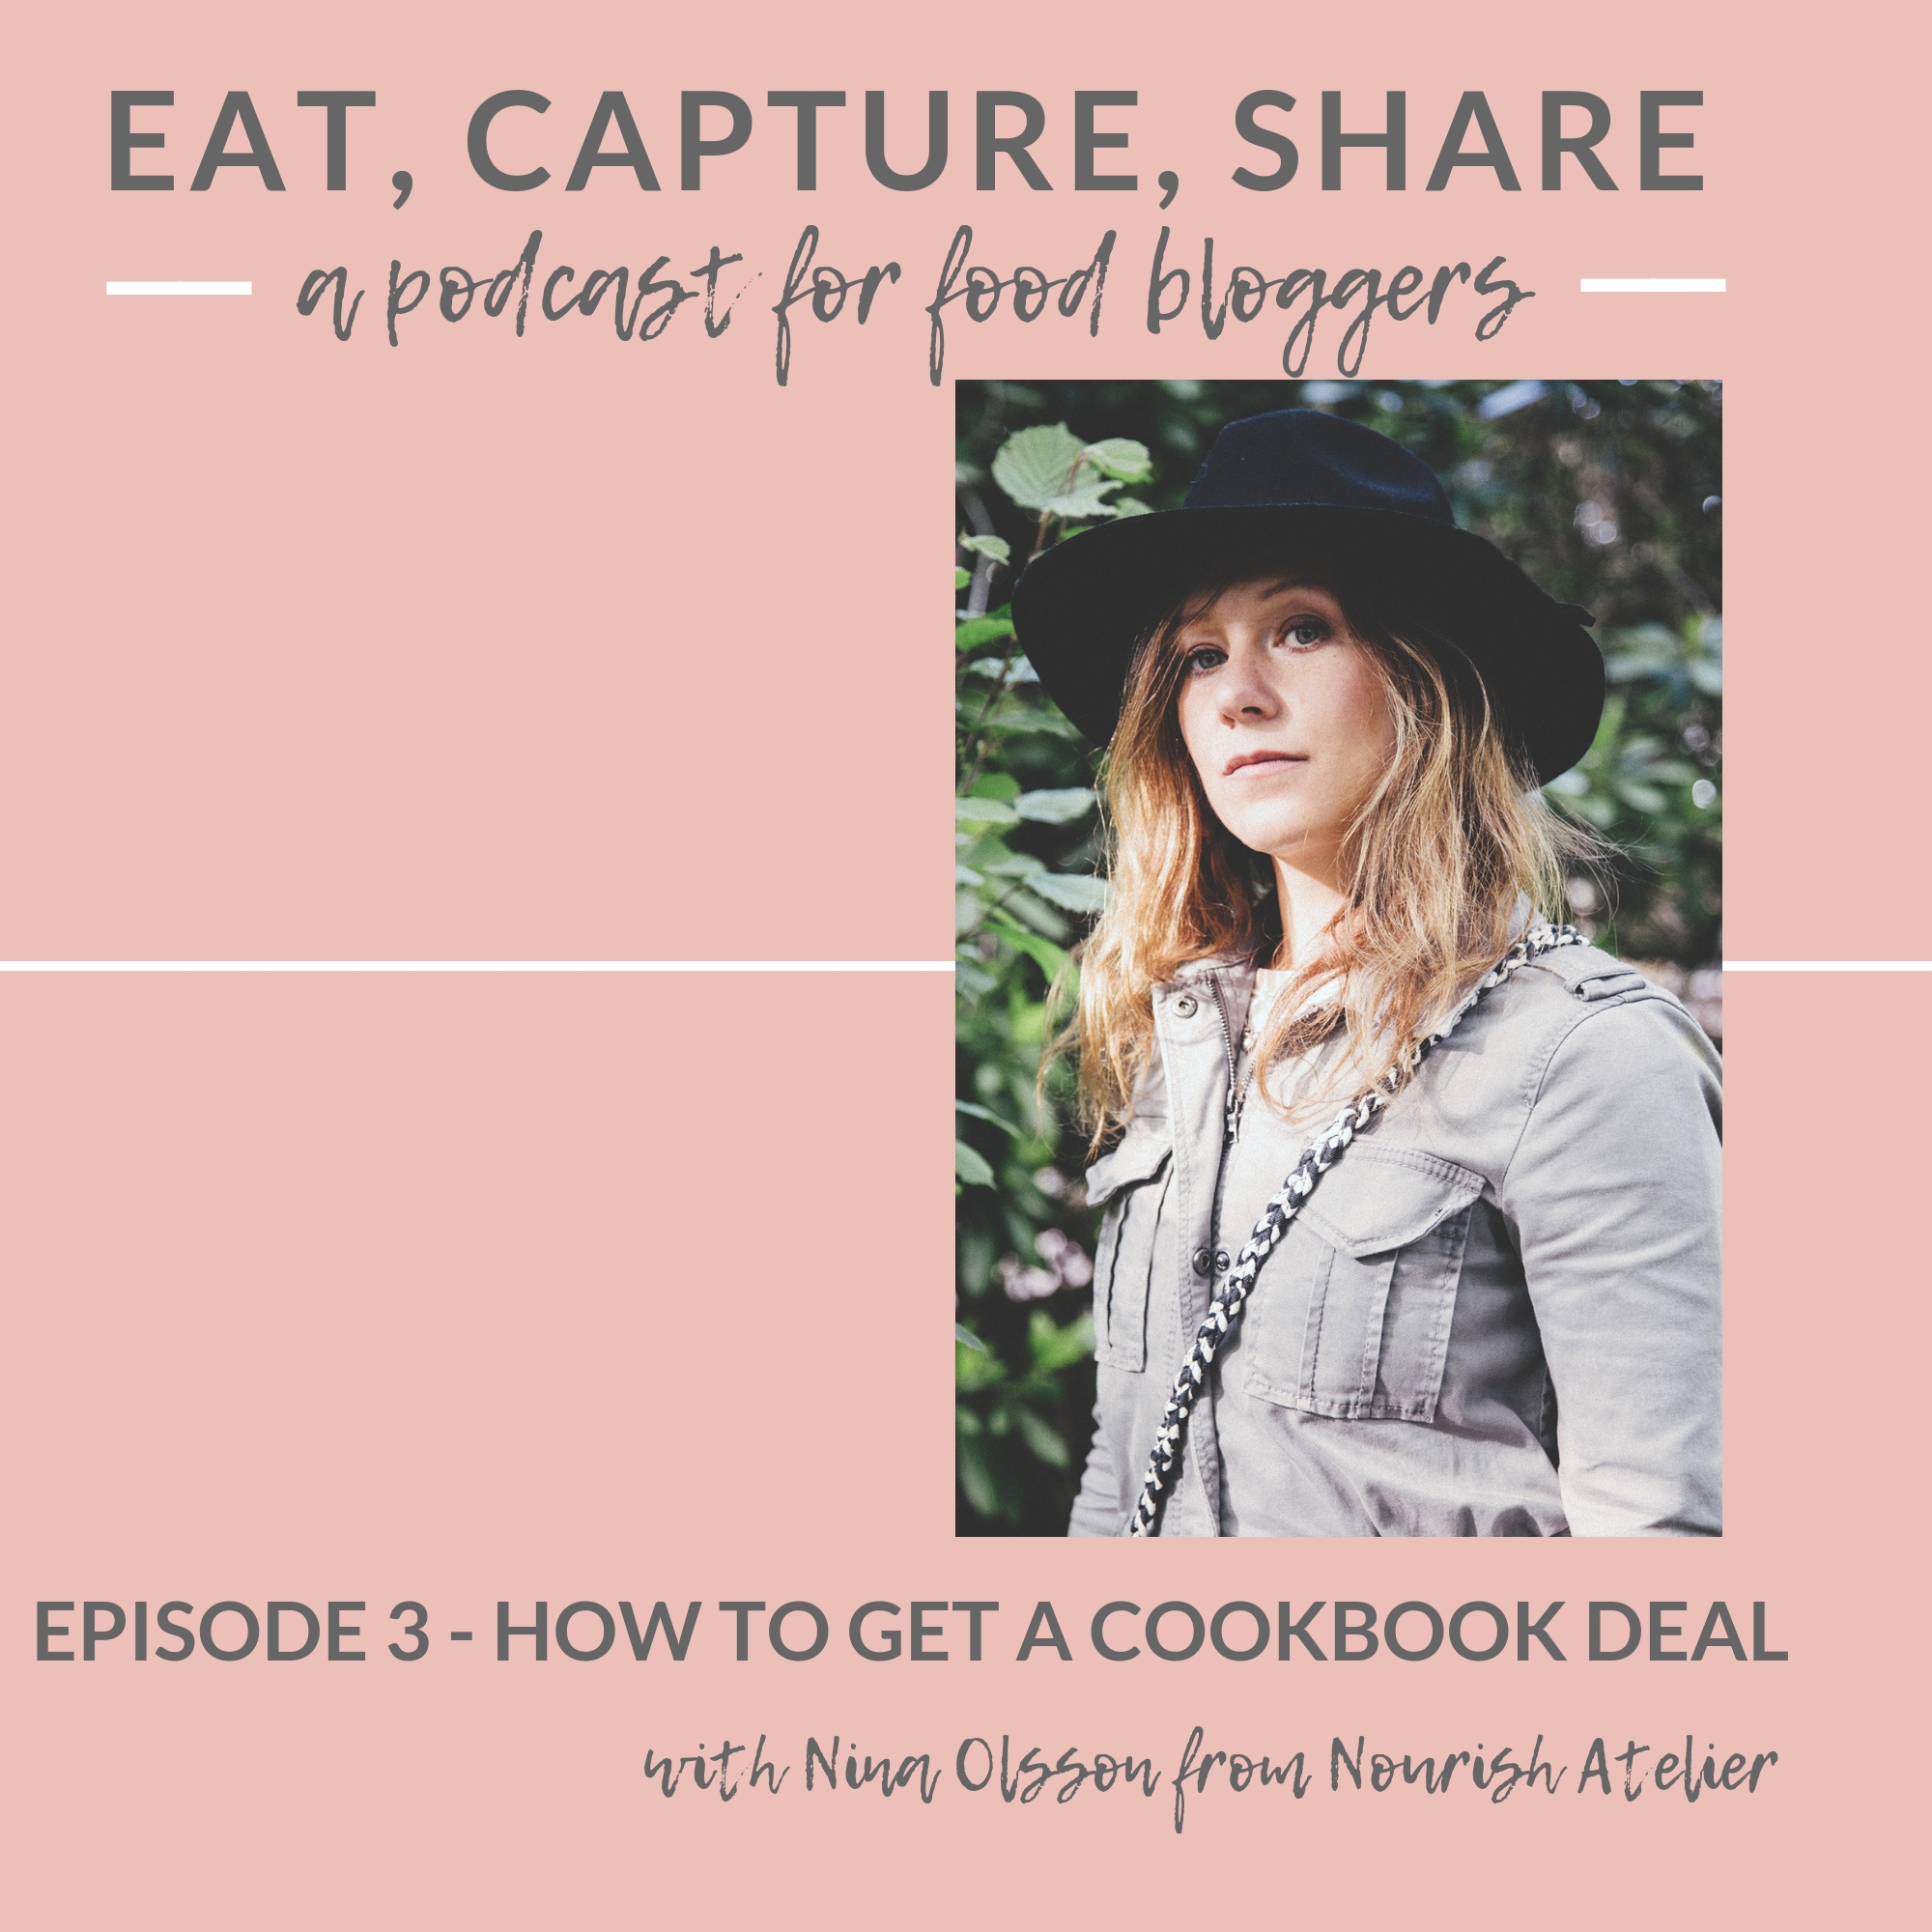 How to get a cookbook deal - Eat, Capture, Share podcast interview with Nourish Atelier